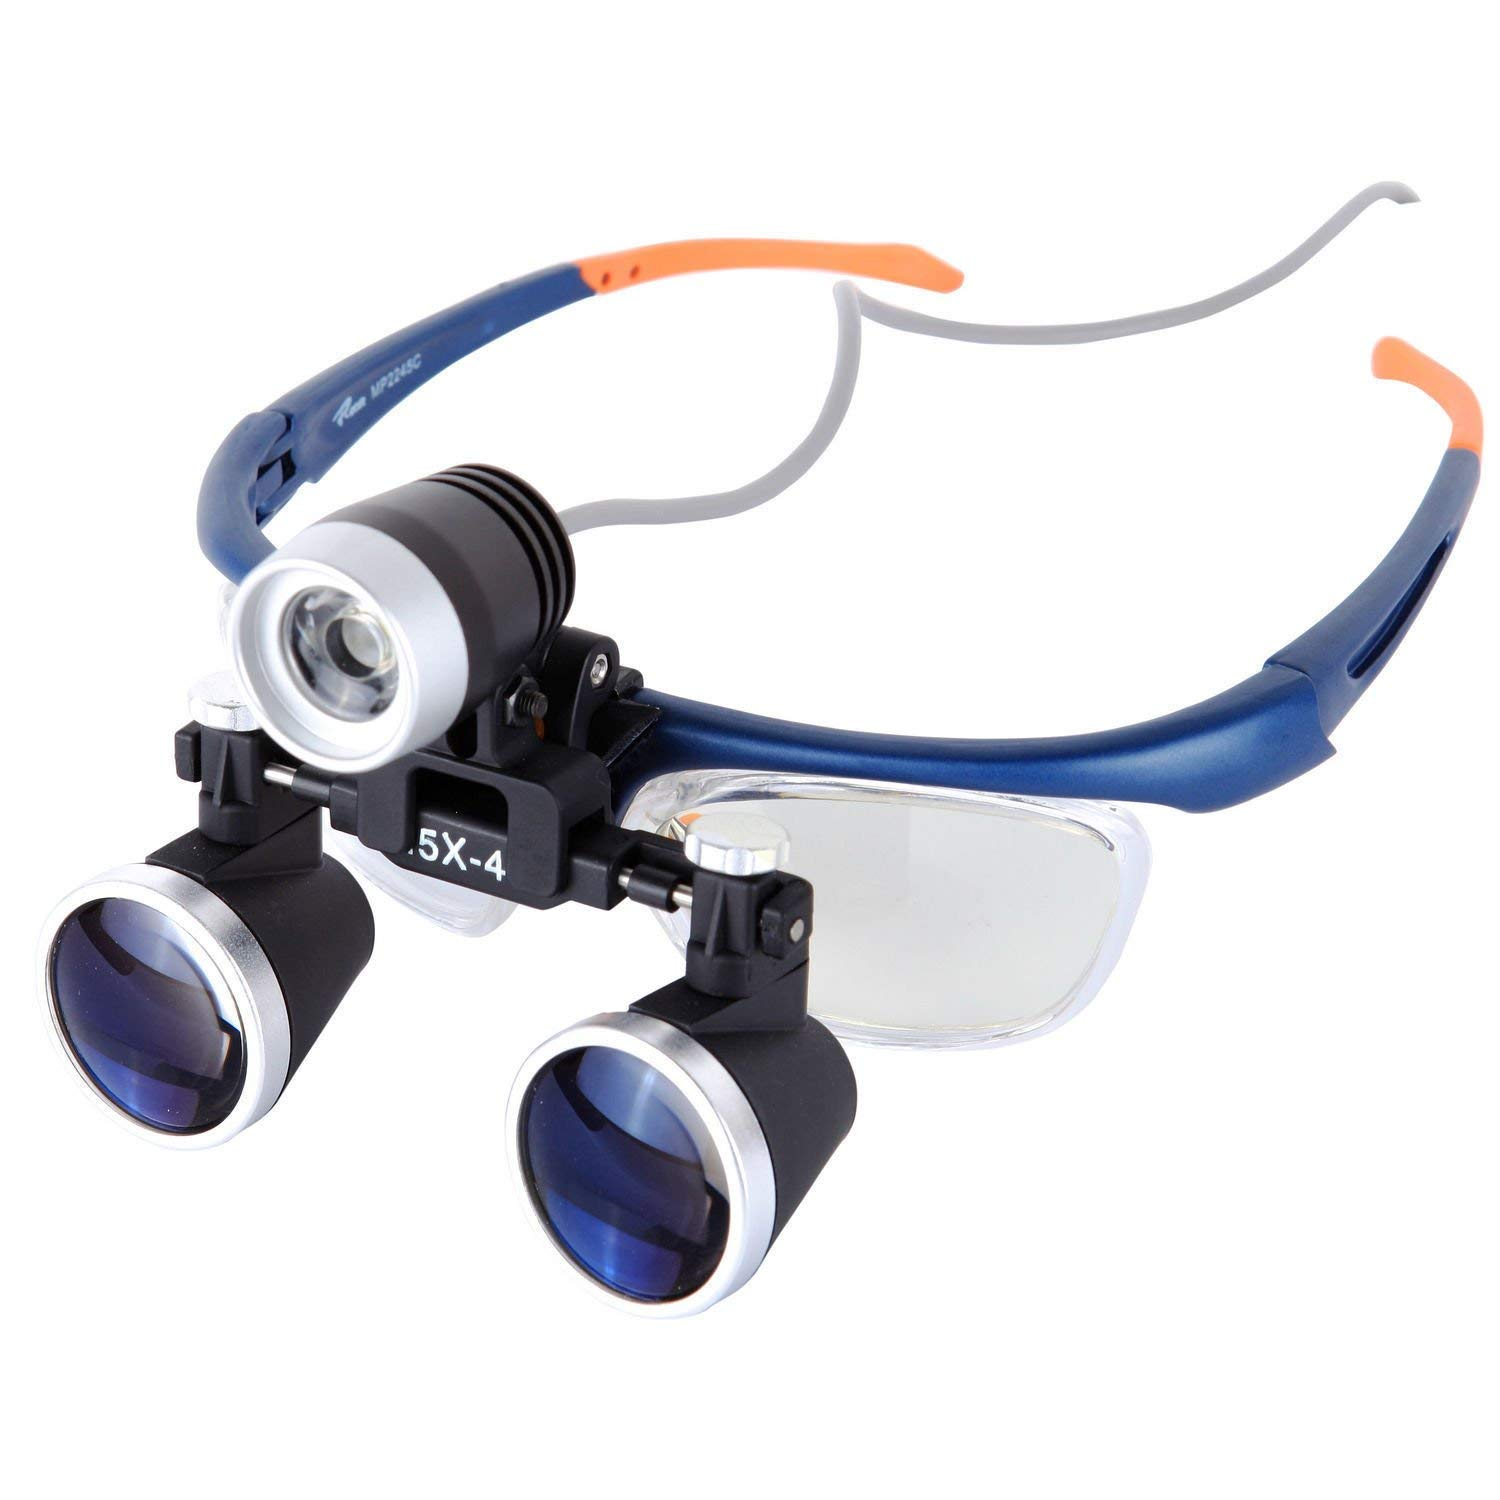 Medical Loupe Surgical Binocular Magnifier w/ 3W High Brightness LED Dental Headlamp Working Distance 420mm (3.5x Magnification) by Beacon Pet